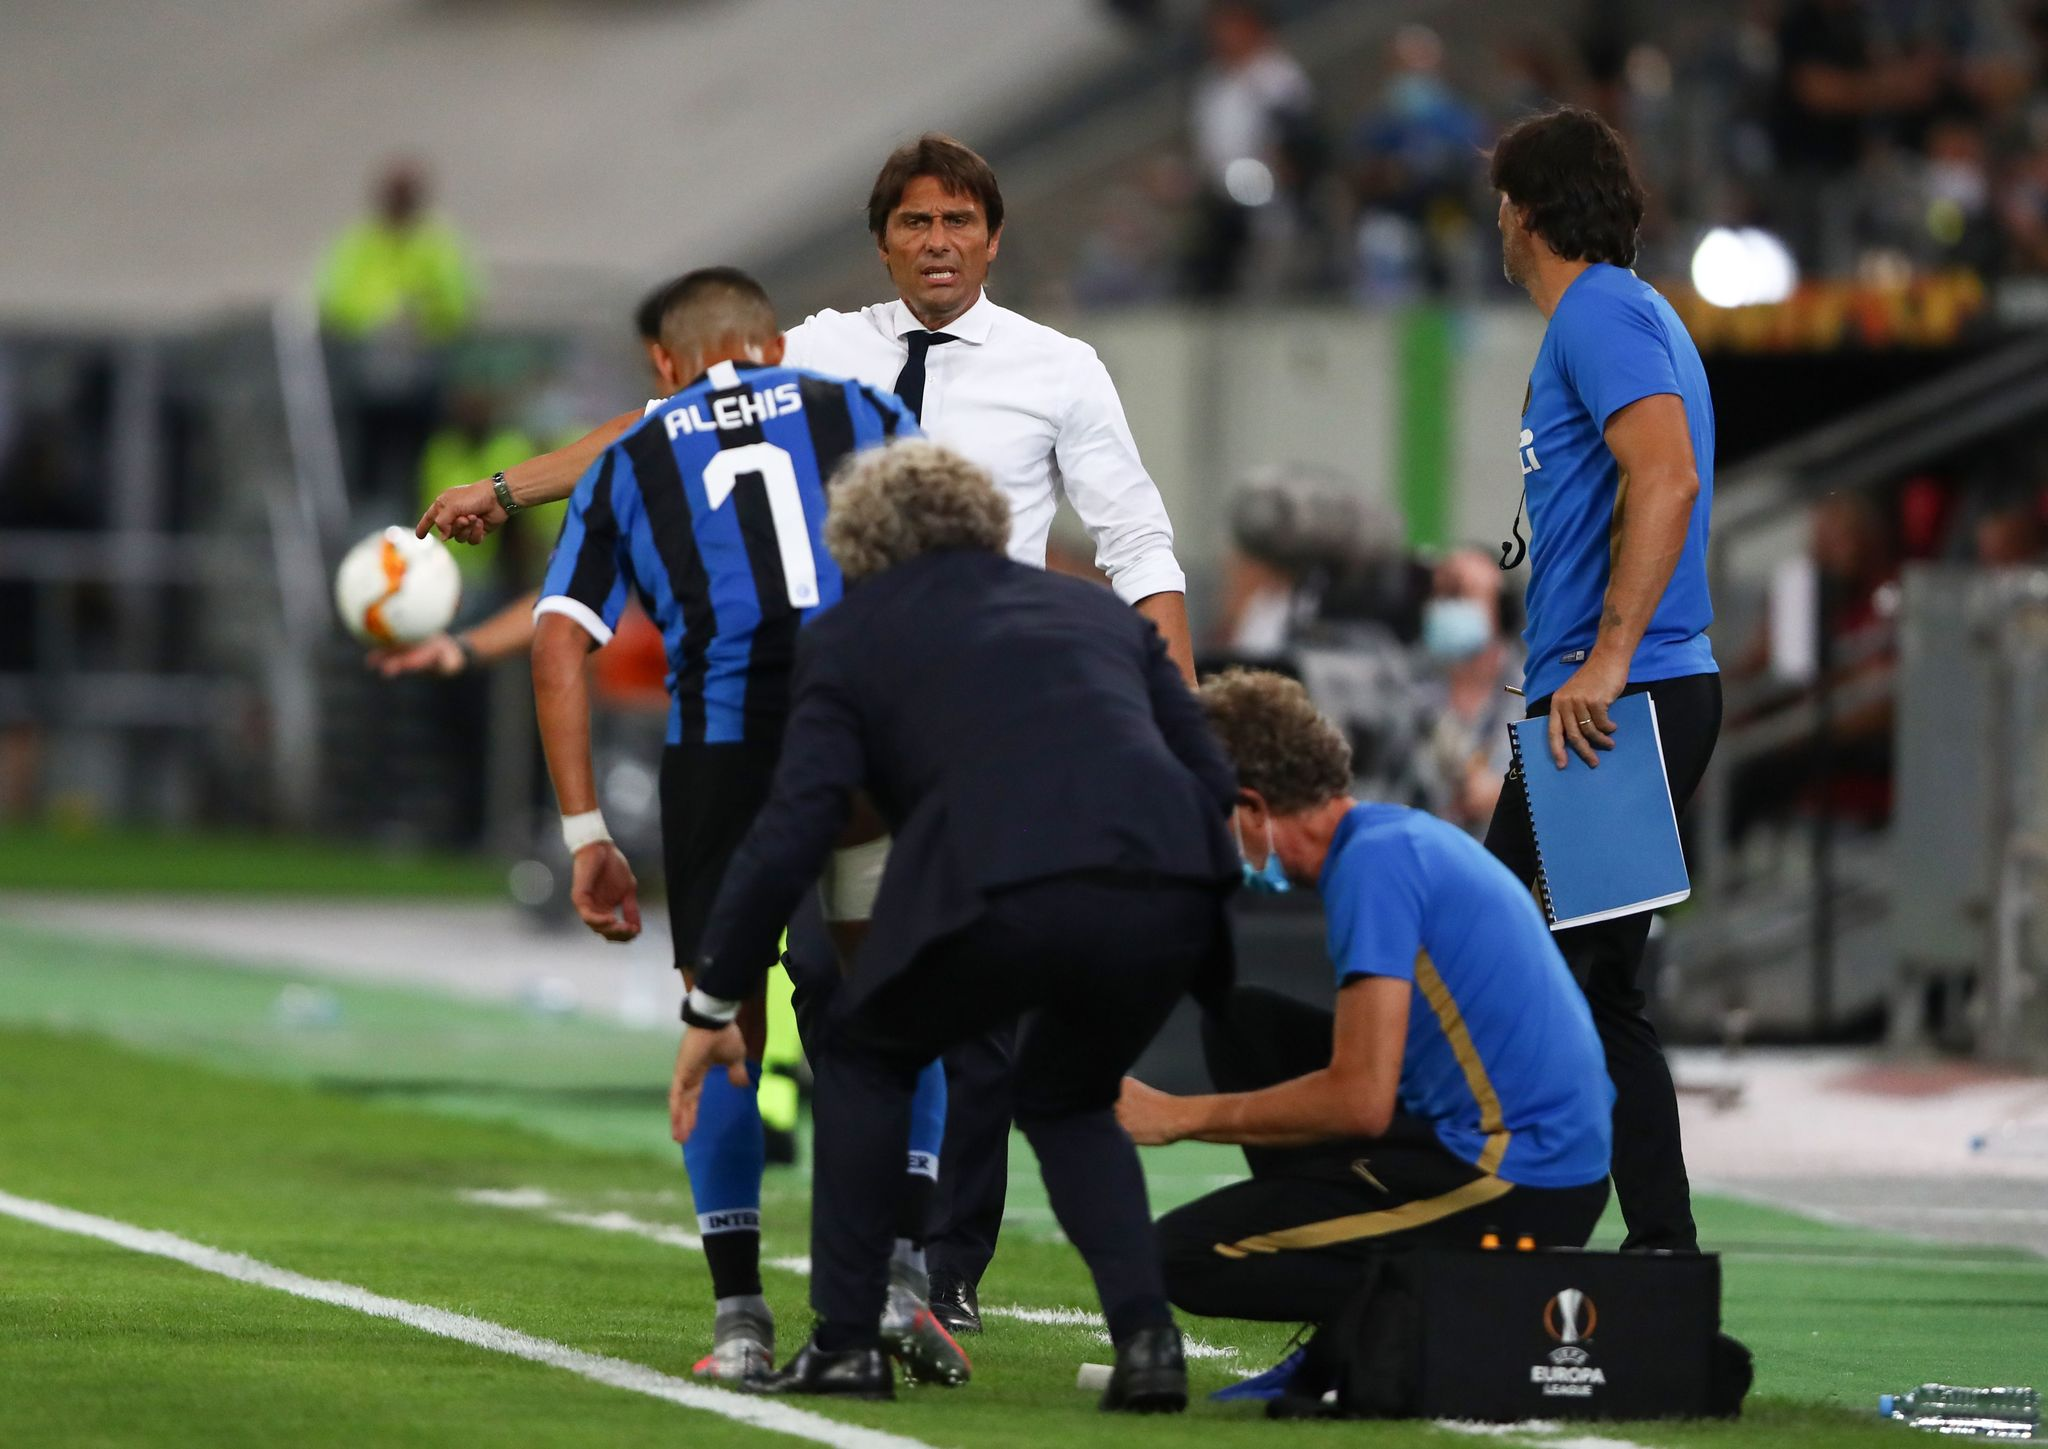 Inter Milans Chilean forward lt;HIT gt;Alexis lt;/HIT gt; Sanchez gets bandaged during the UEFA Europa League quarter-final football match Inter Milan v Bayer 04 Leverkusen at the Duesseldorf Arena on August 10, 2020 in Duesseldorf, western Germany. (Photo by Dean Mouhtaropoulos / POOL / AFP)